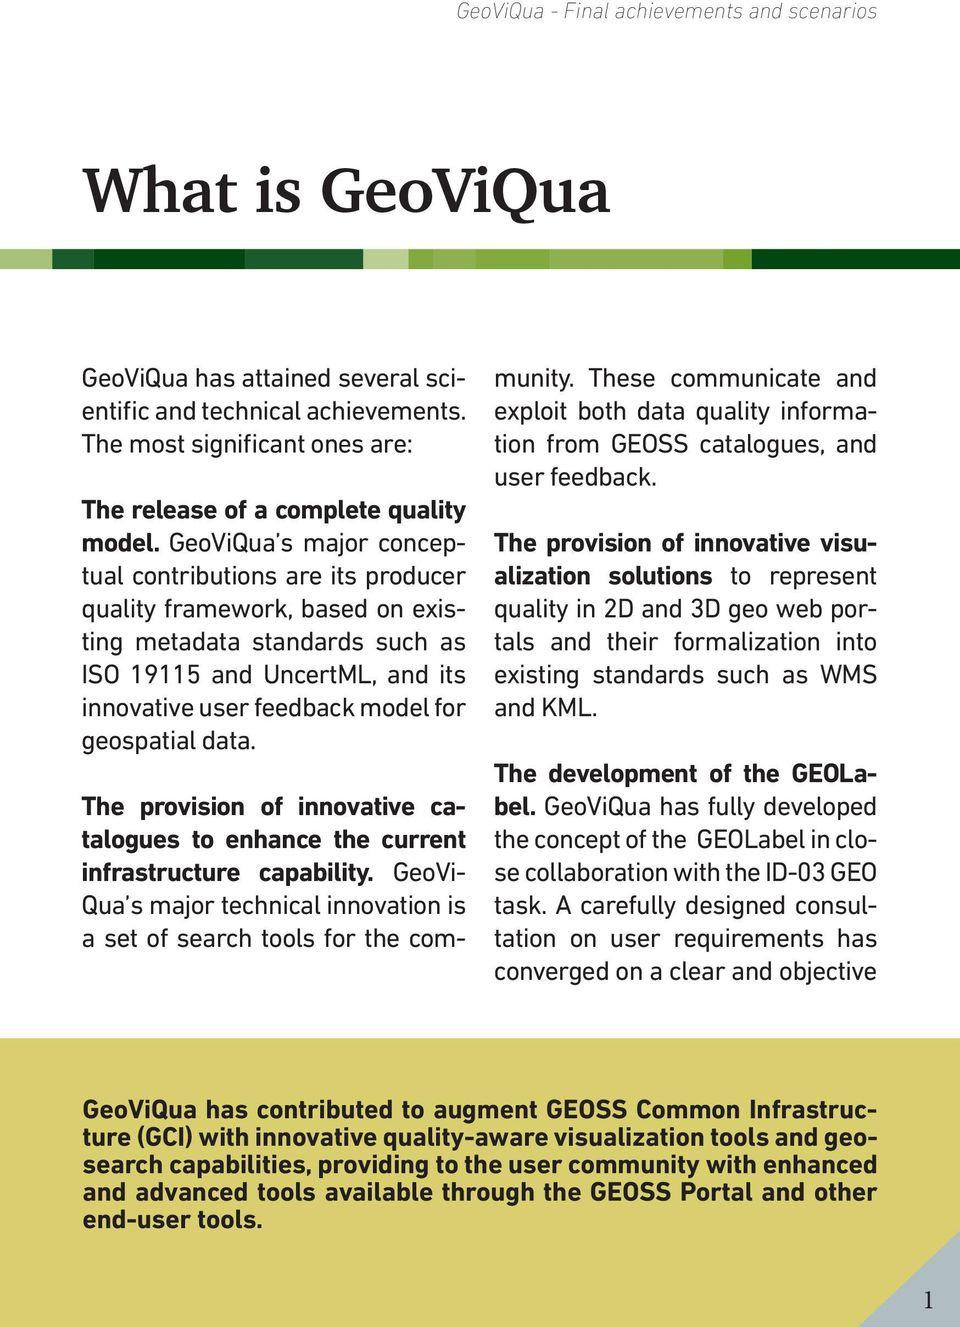 GeoViQua s major conceptual contributions are its producer quality framework, based on existing metadata standards such as ISO 19115 and UncertML, and its innovative user feedback model for